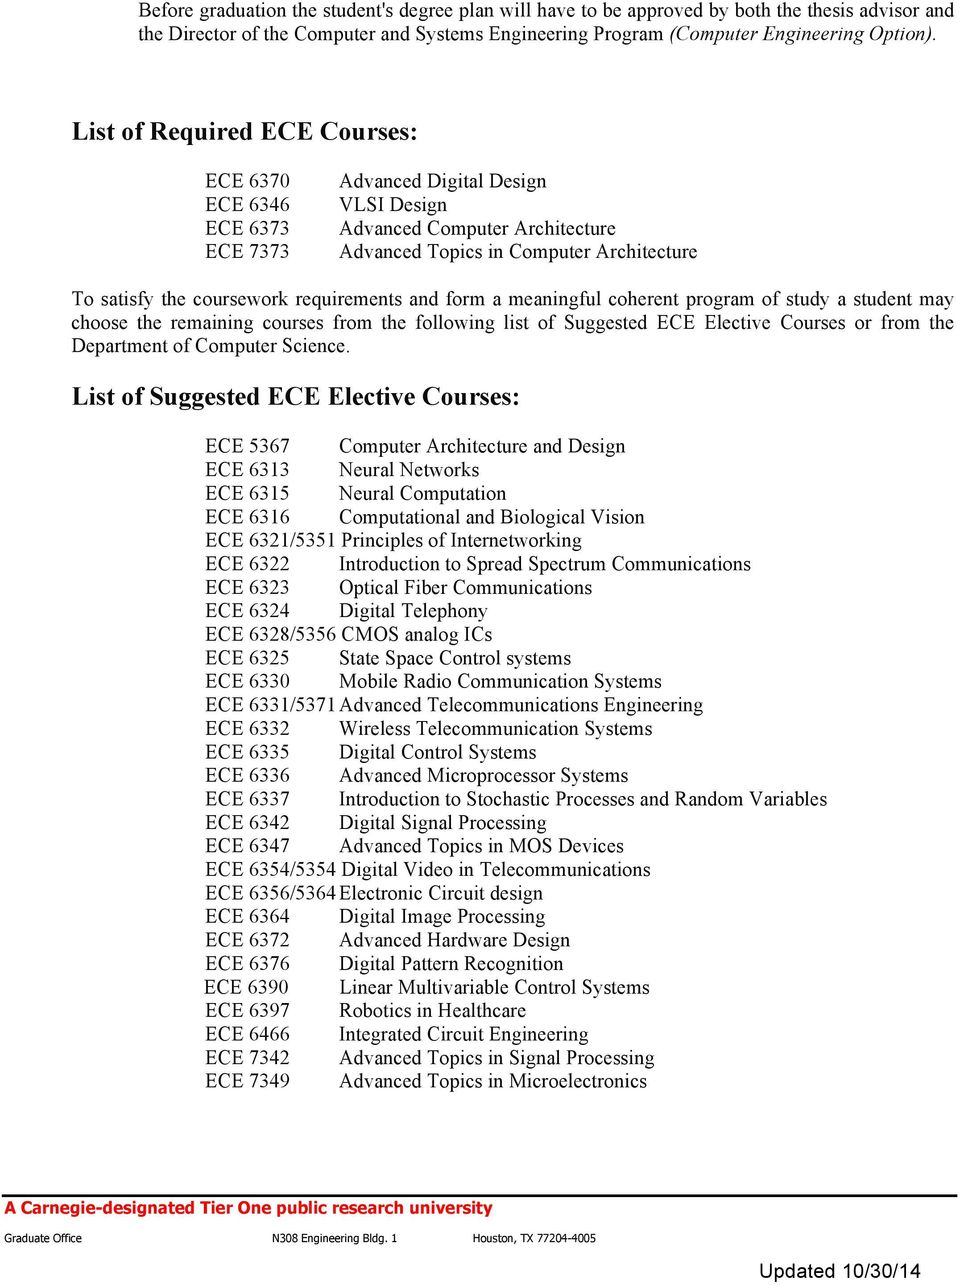 requirements and form a meaningful coherent program of study a student may choose the remaining courses from the following list of Suggested ECE Elective Courses or from the Department of Computer